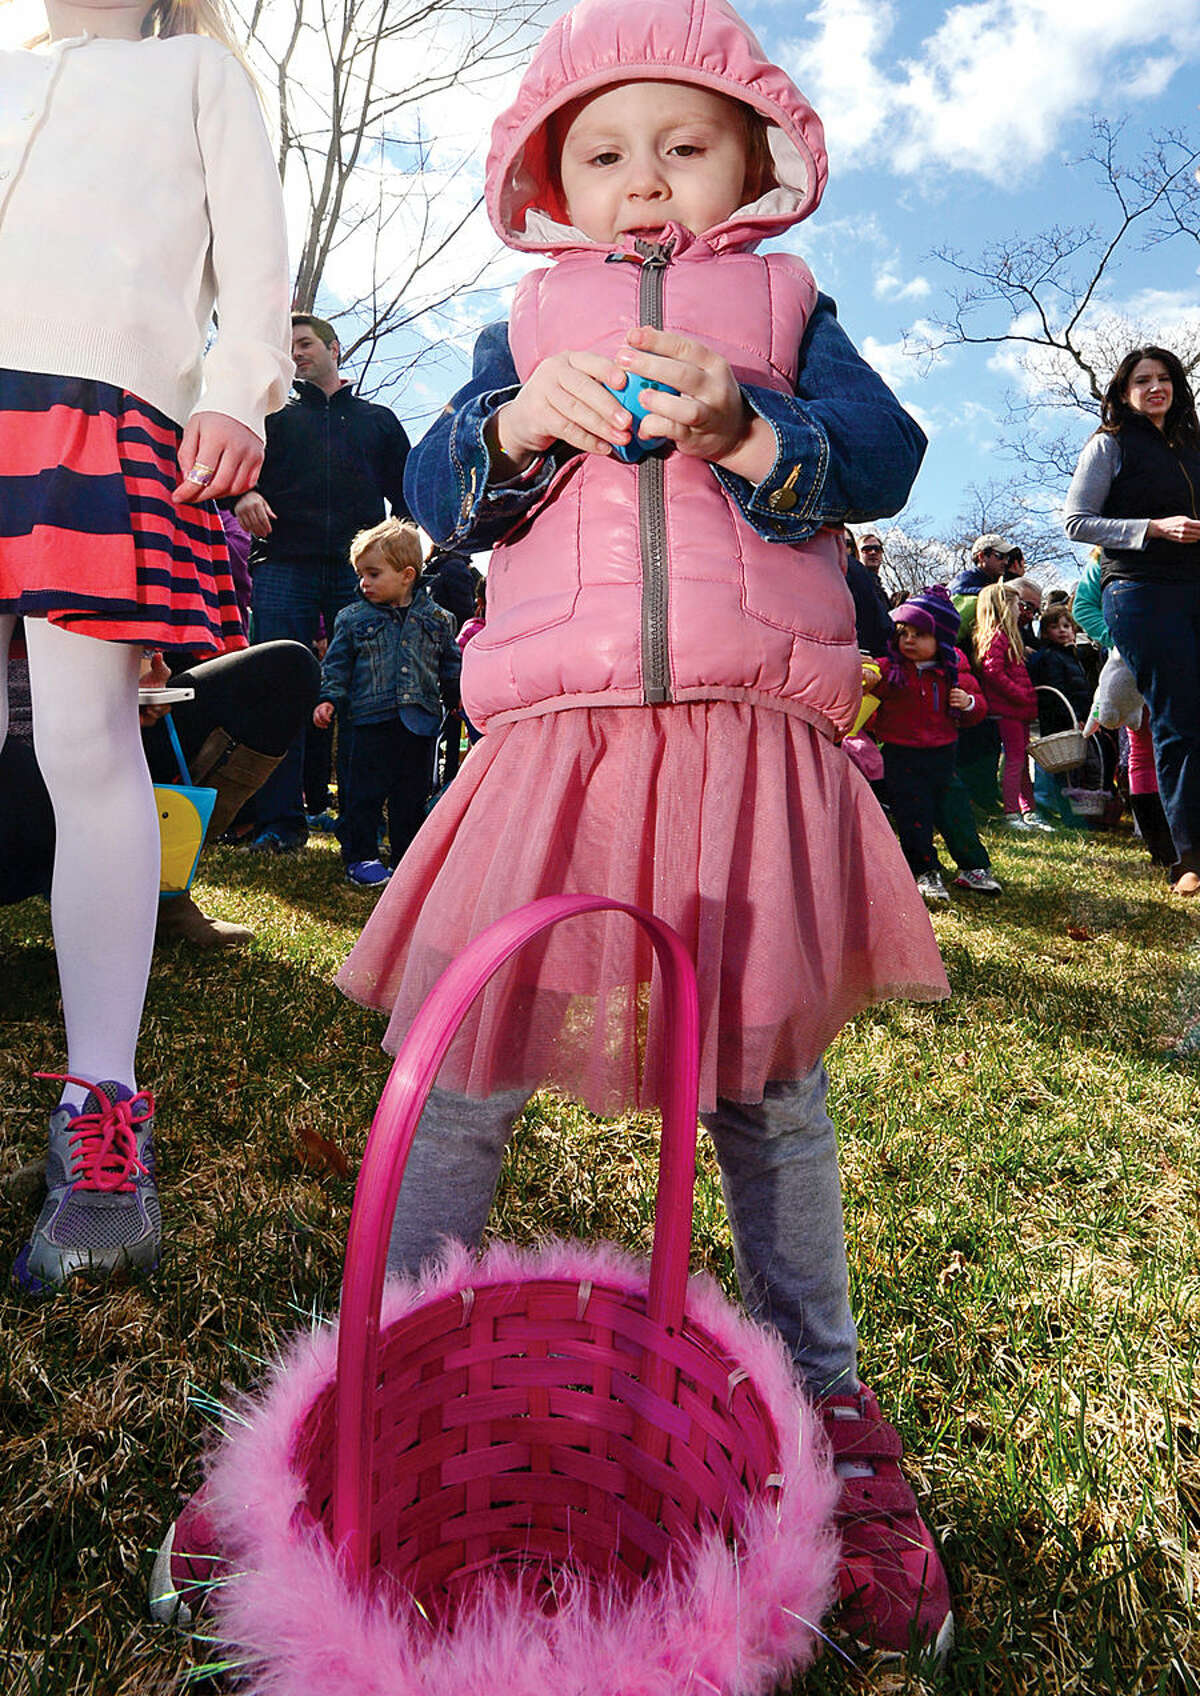 Hour photo / Erik Trautmann Lily Ricciardi, 2, looks at an egg during The Rowayton Community Association's annual Easter Egg Hunt Saturday at the Rowayton Community Center.